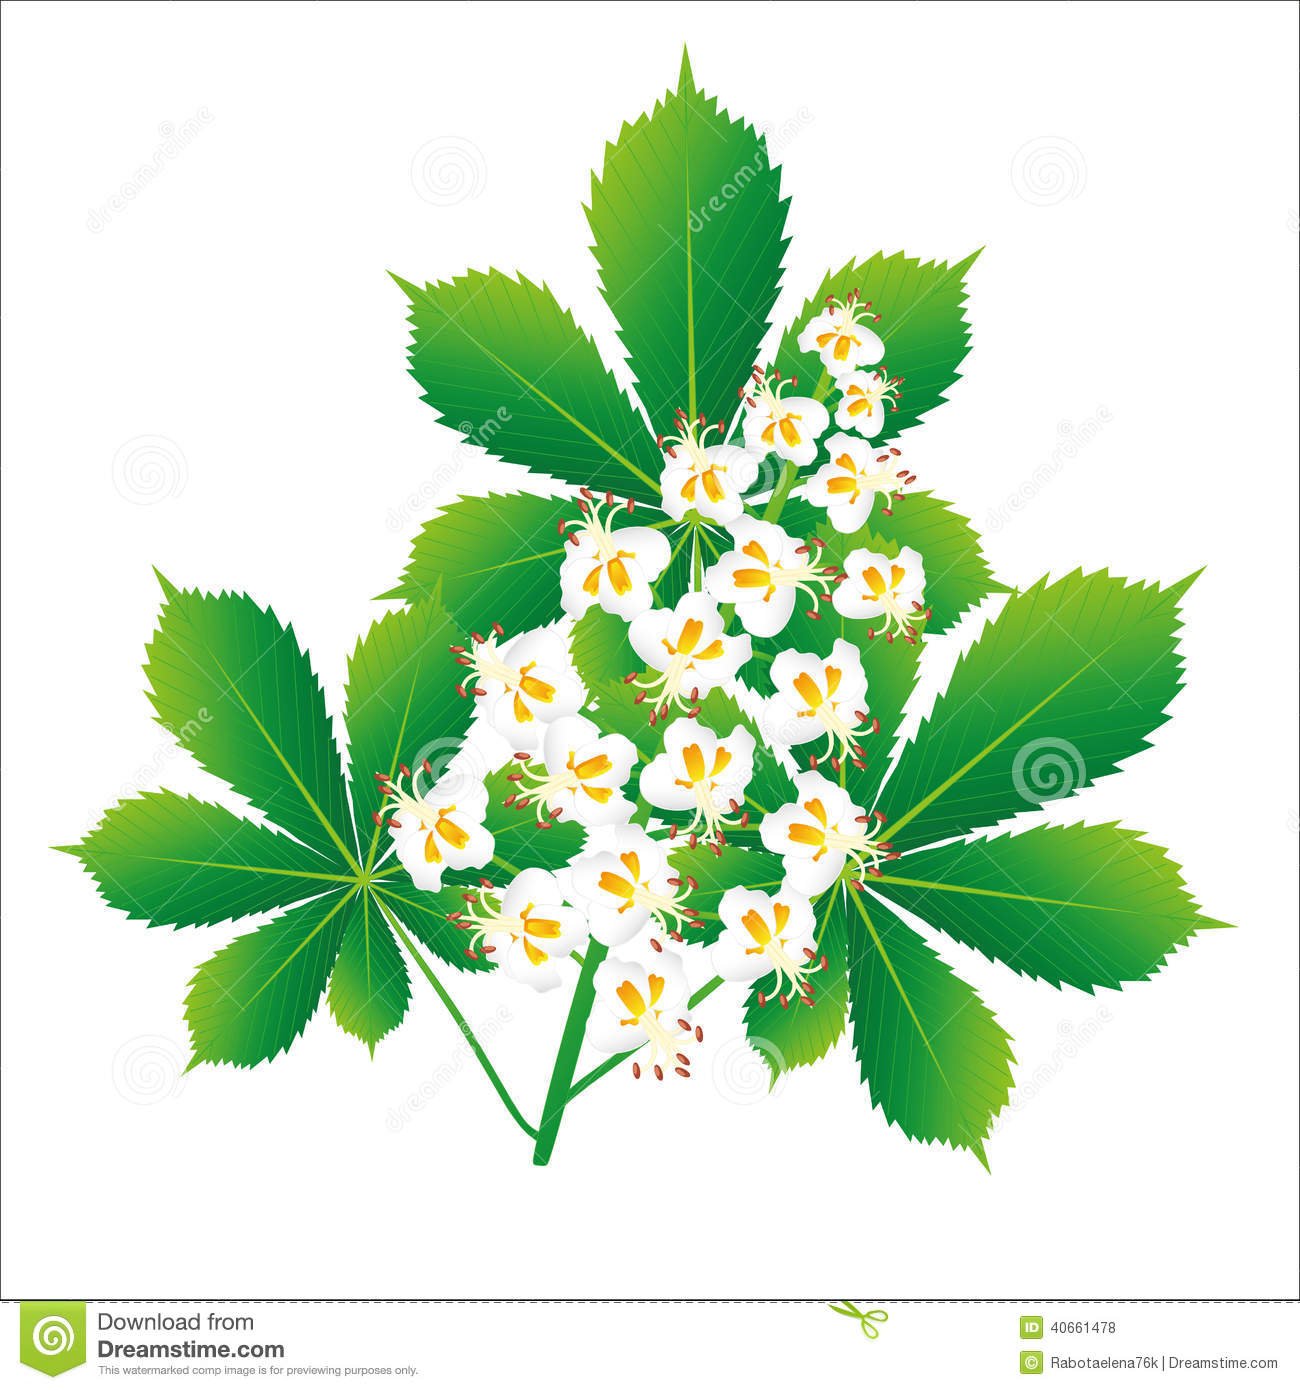 Horse Chestnut Flower Isolated Object Stock Vector.